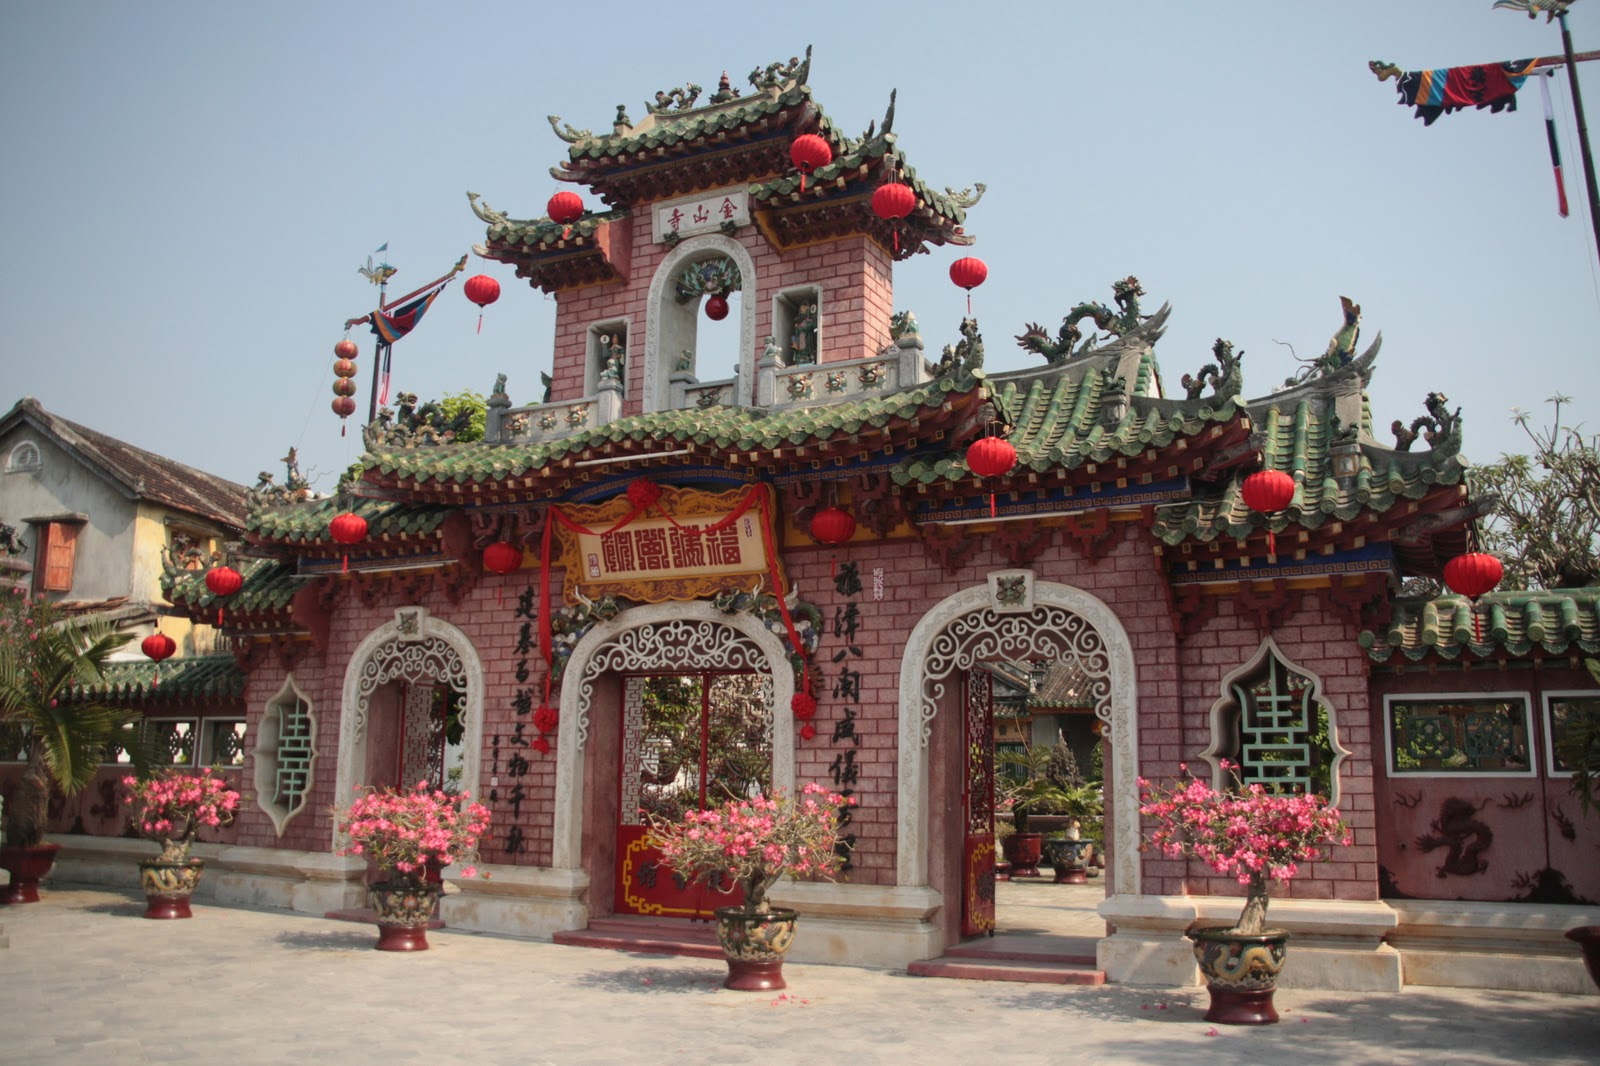 Hoi An Vietnam  City pictures : Phoebettmh Travel: Vietnam – Hoi An – Oozing charm and history ...